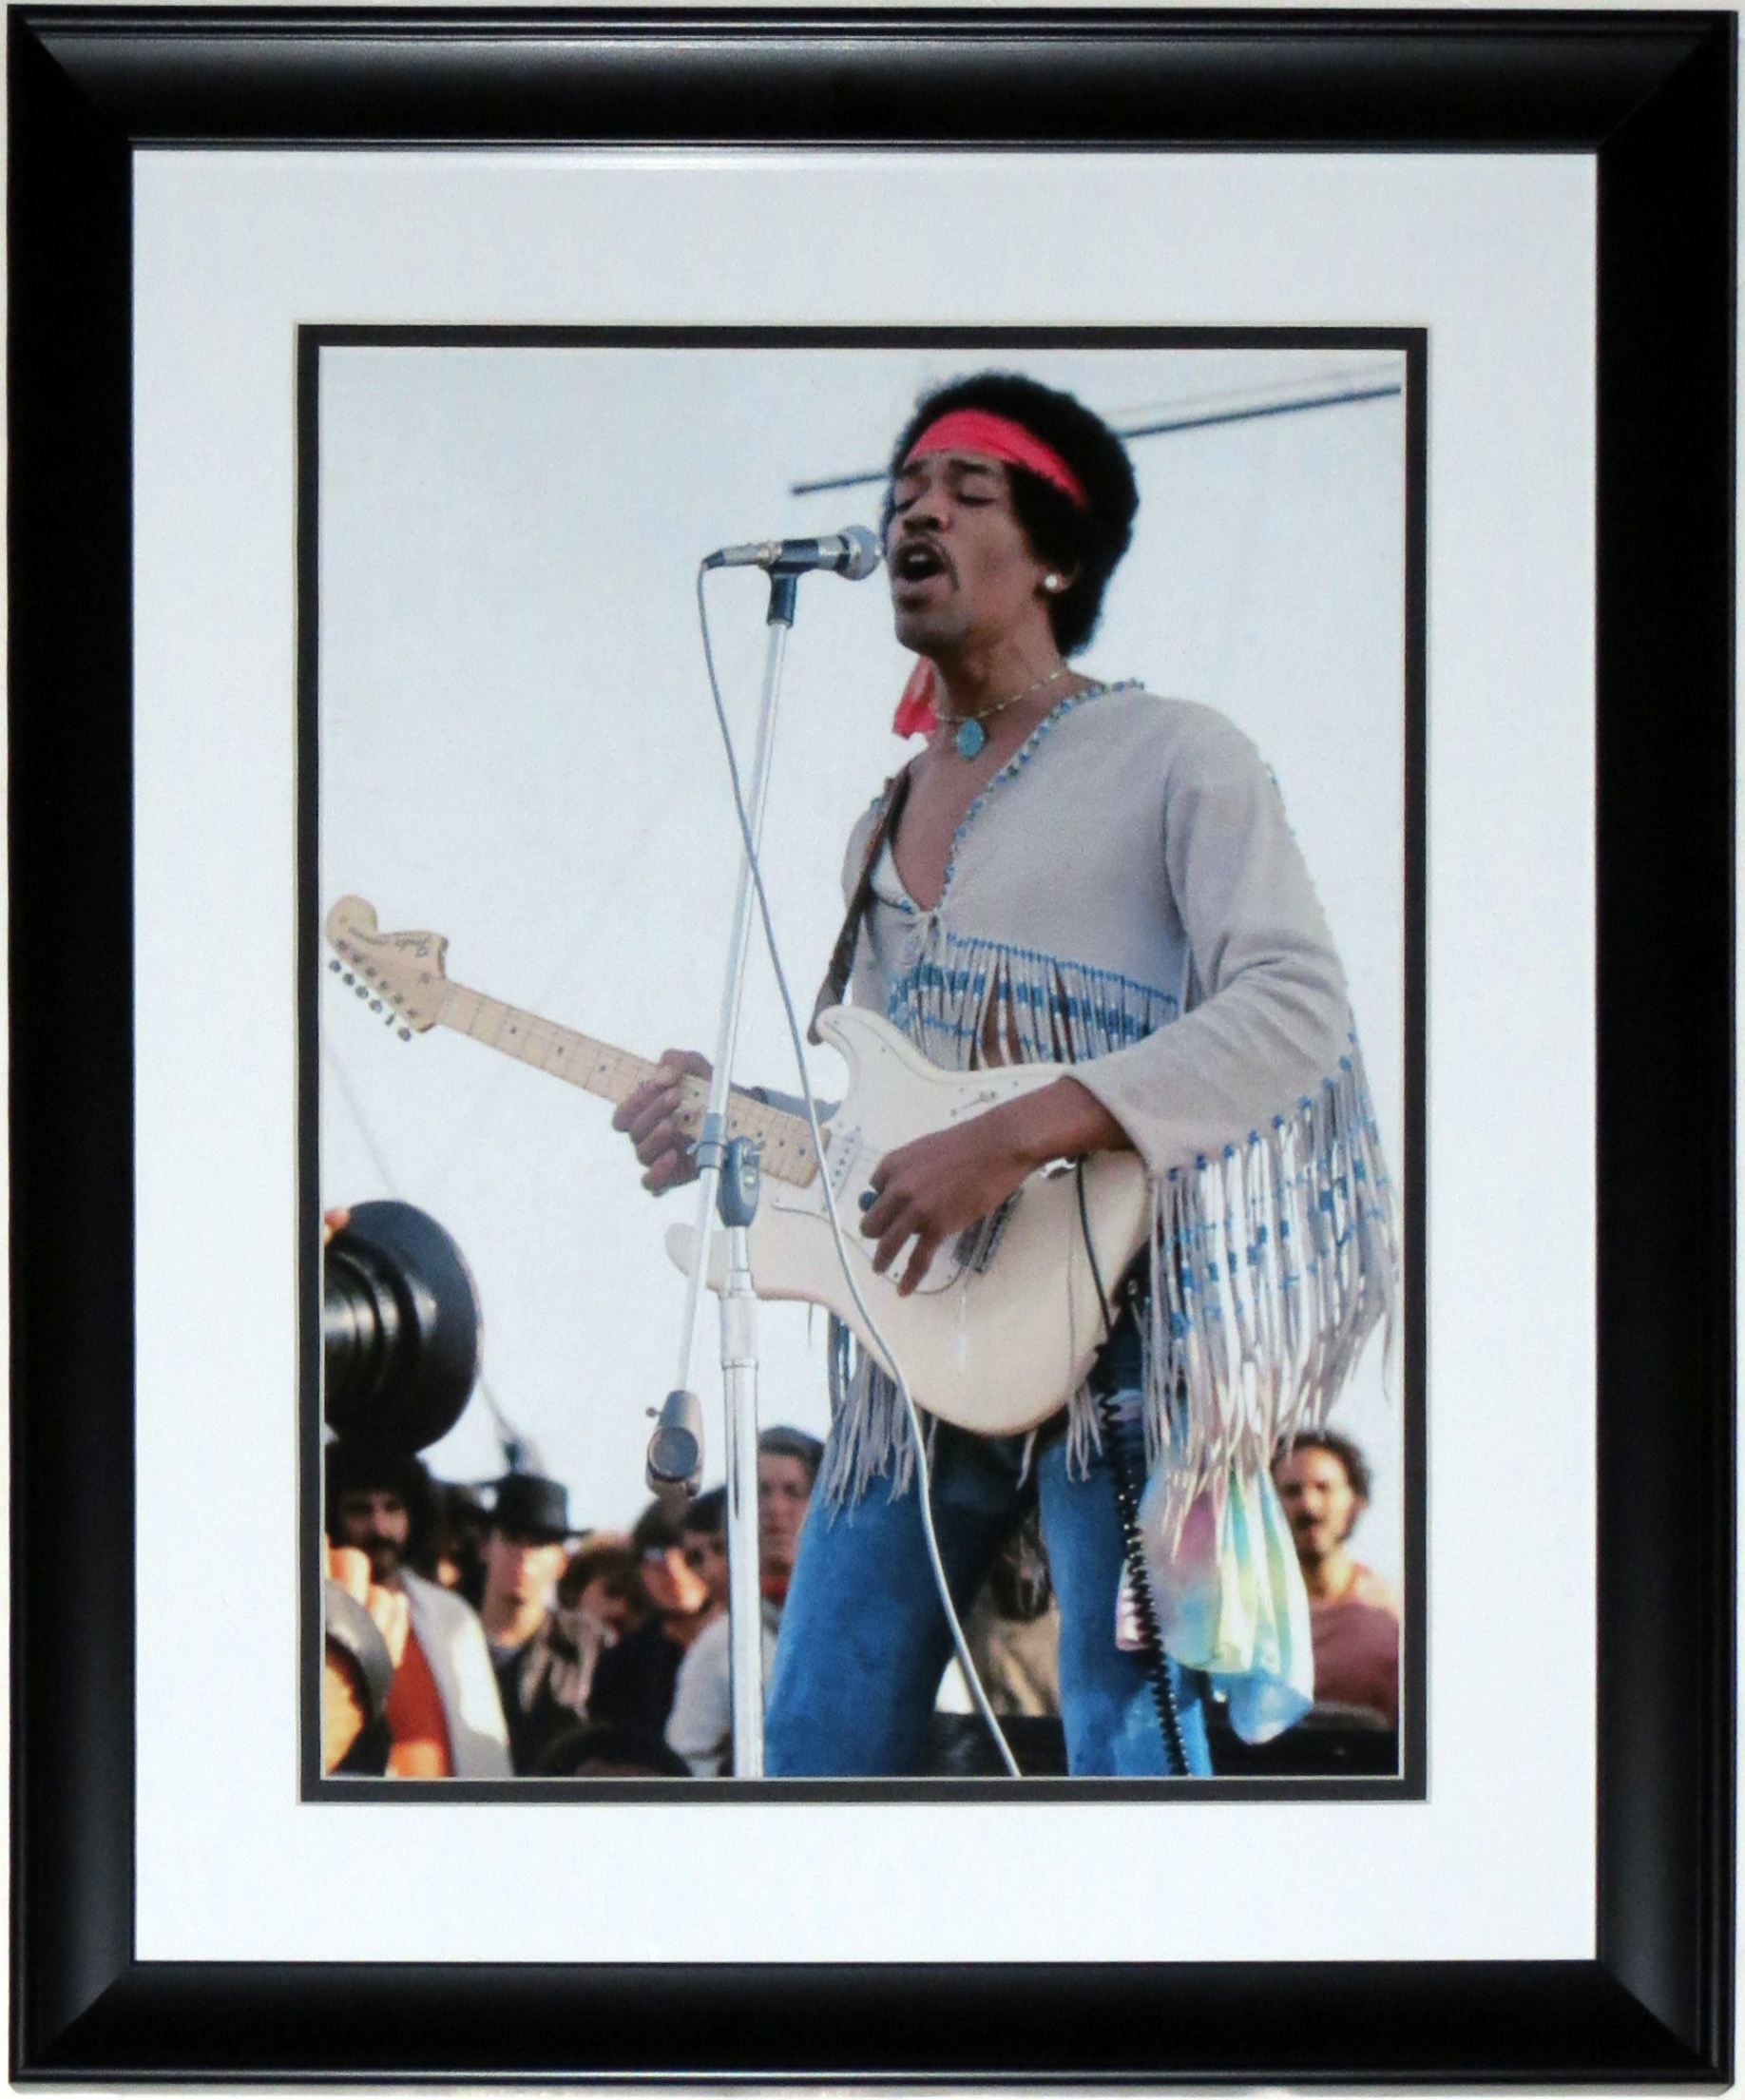 Jimi Hendrix 1969 Woodstock 11x14 Concert Photo - Professionally Framed